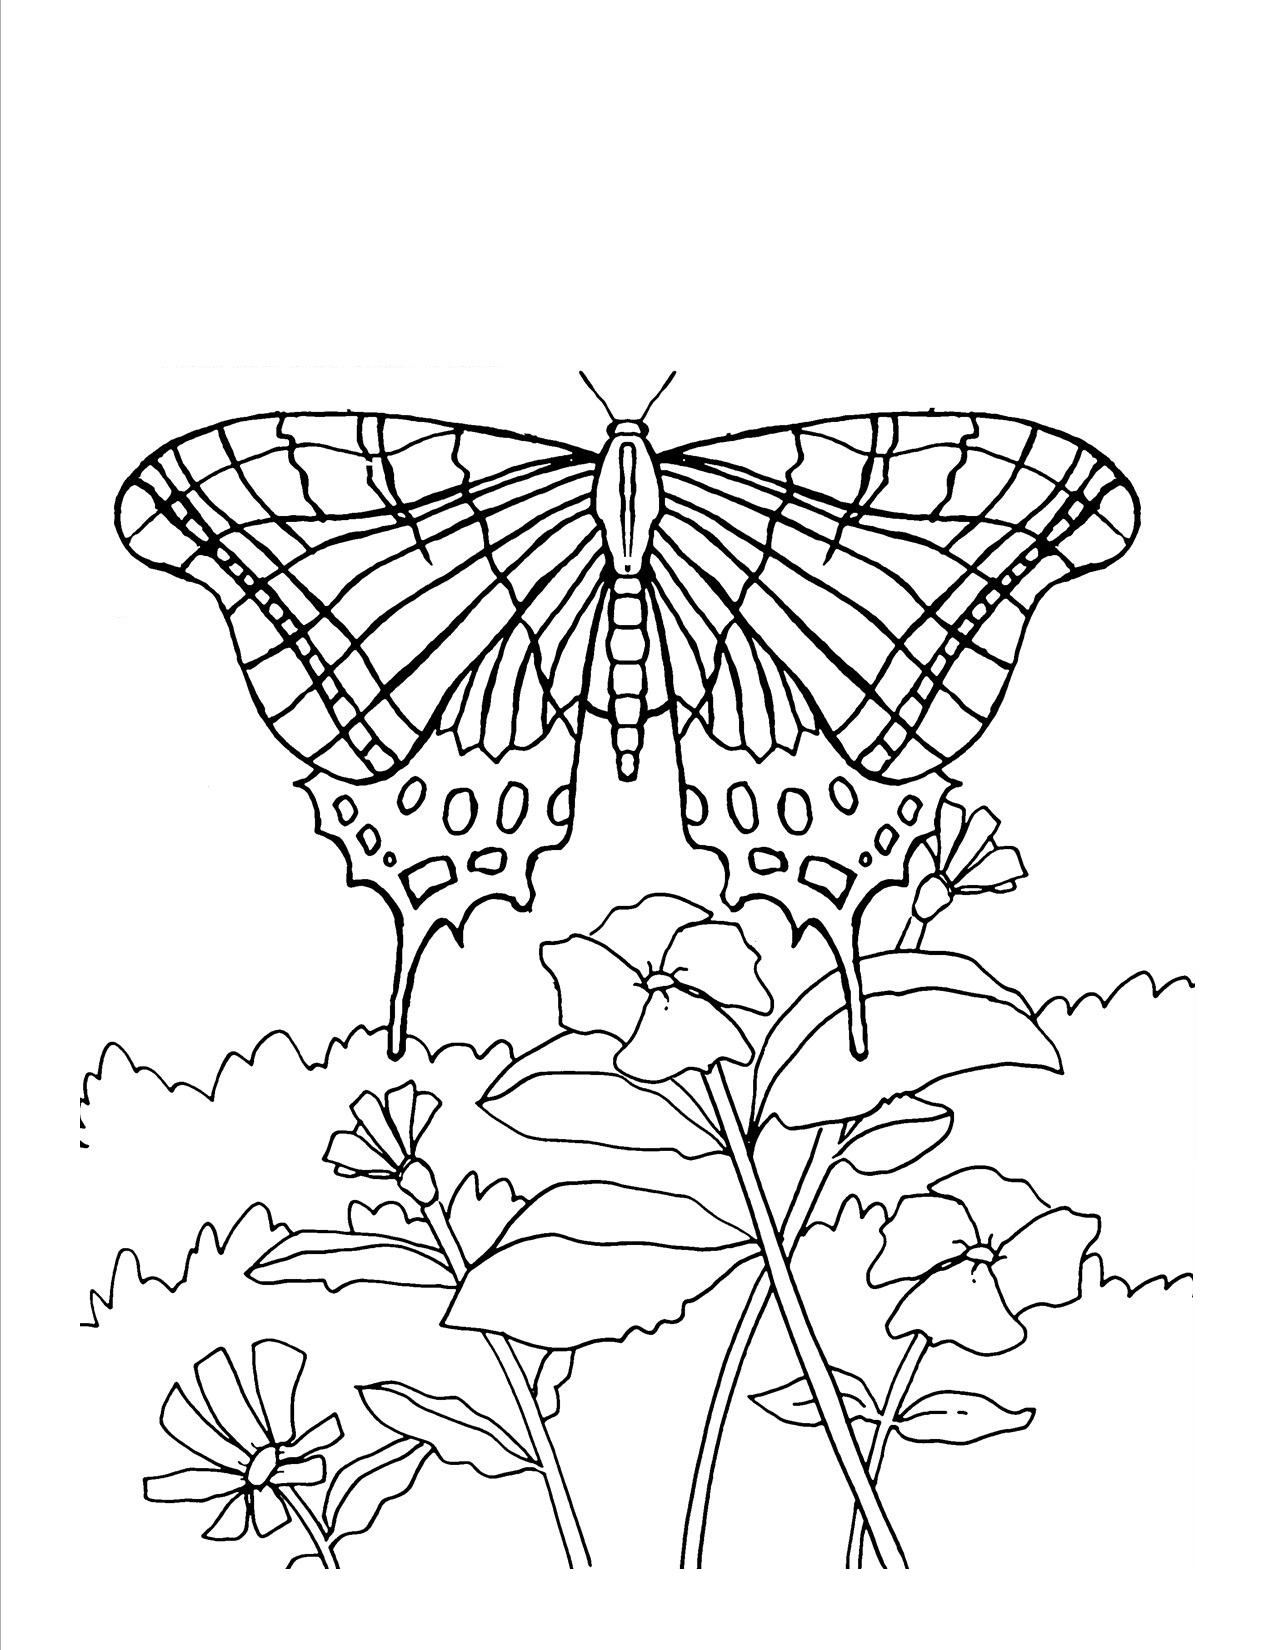 Monarch butterflies Coloring Page Monarch butterfly Download Free Download Of Detailed Coloring Pages for Adults Collection